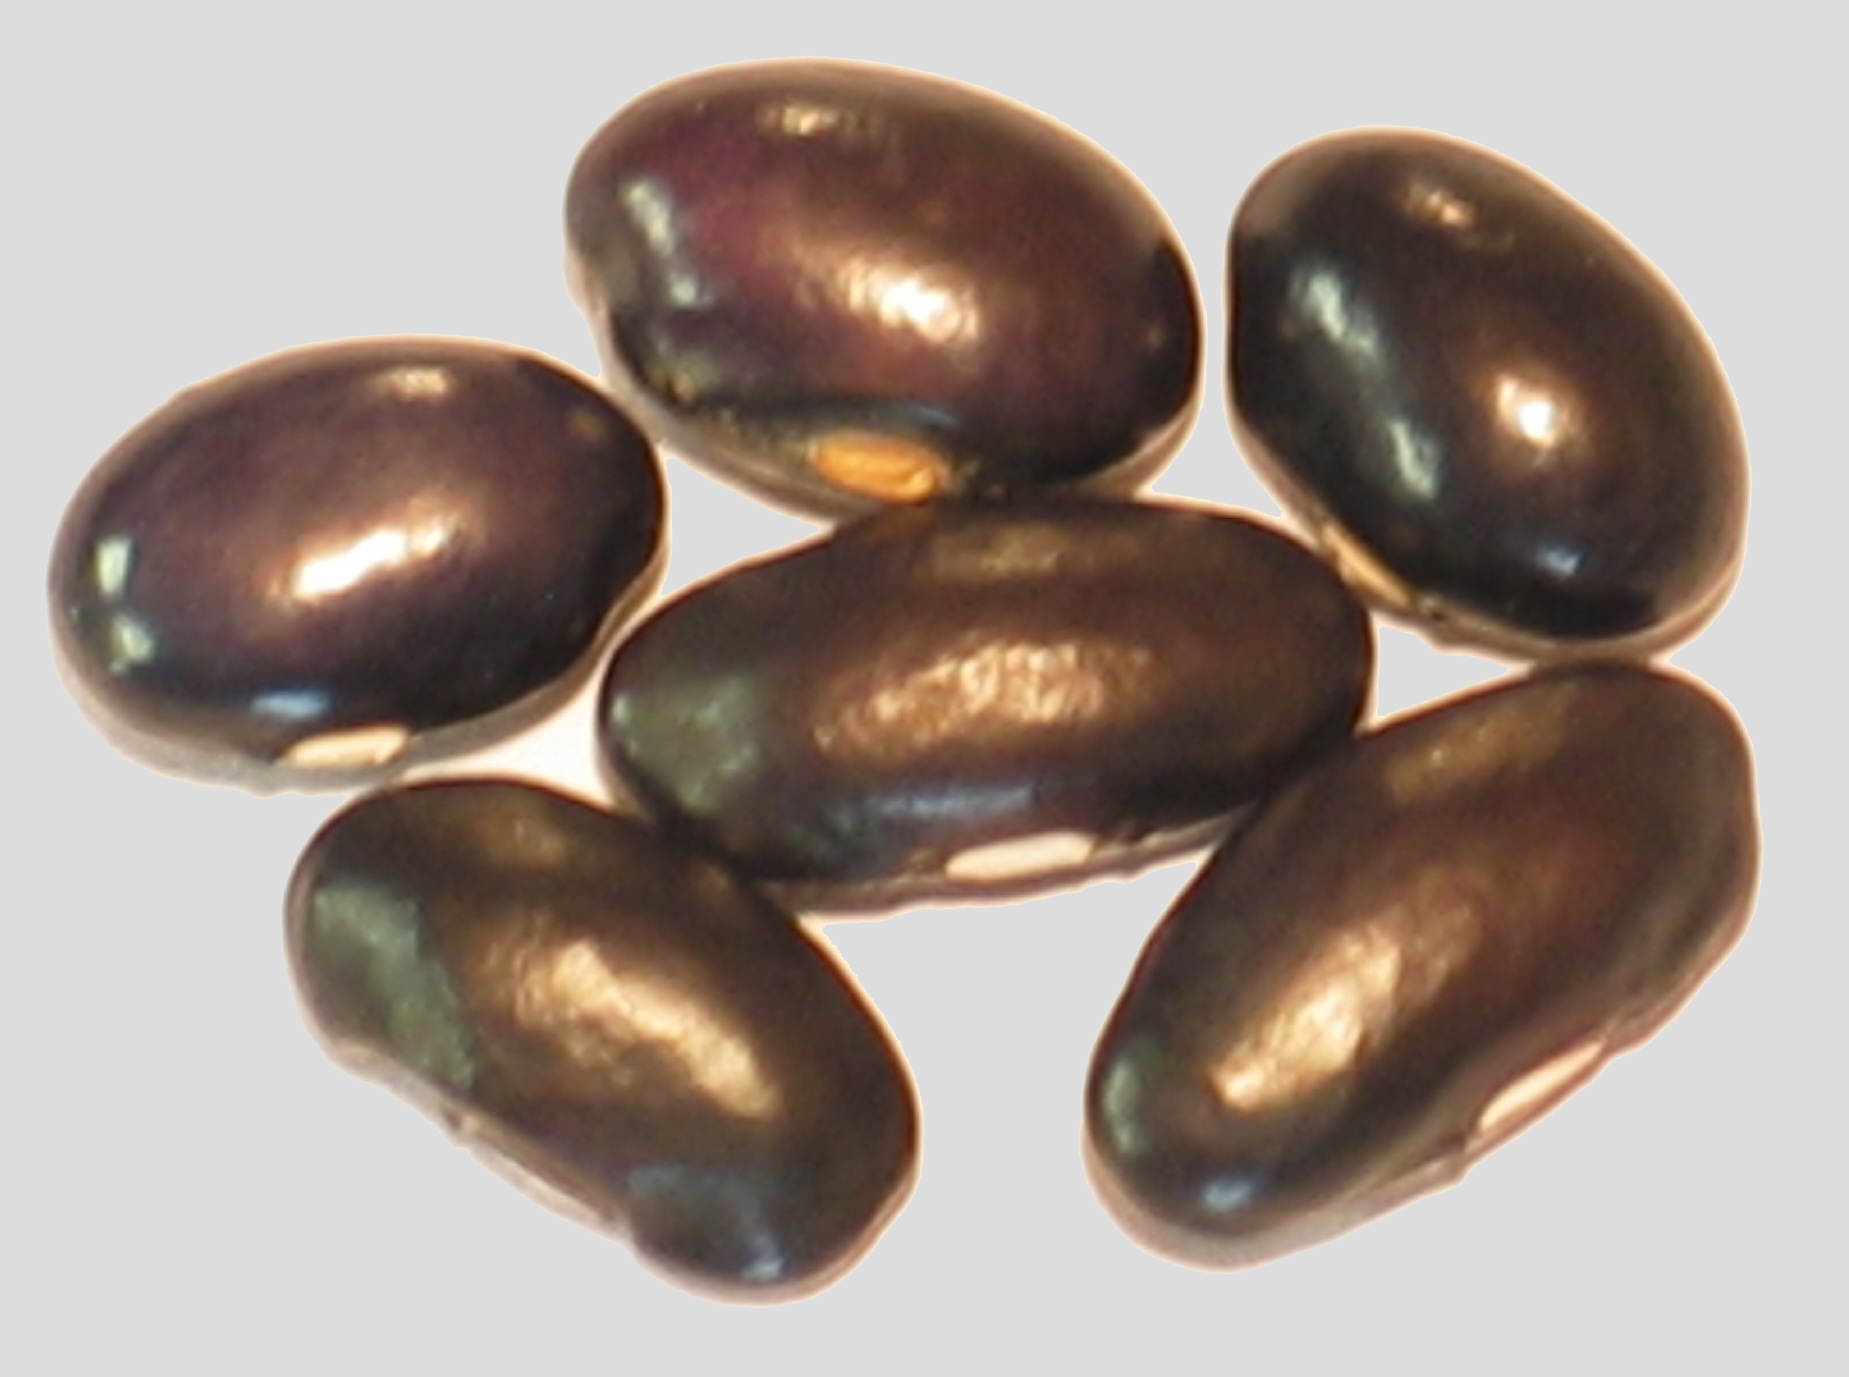 image of Old Black Coco beans